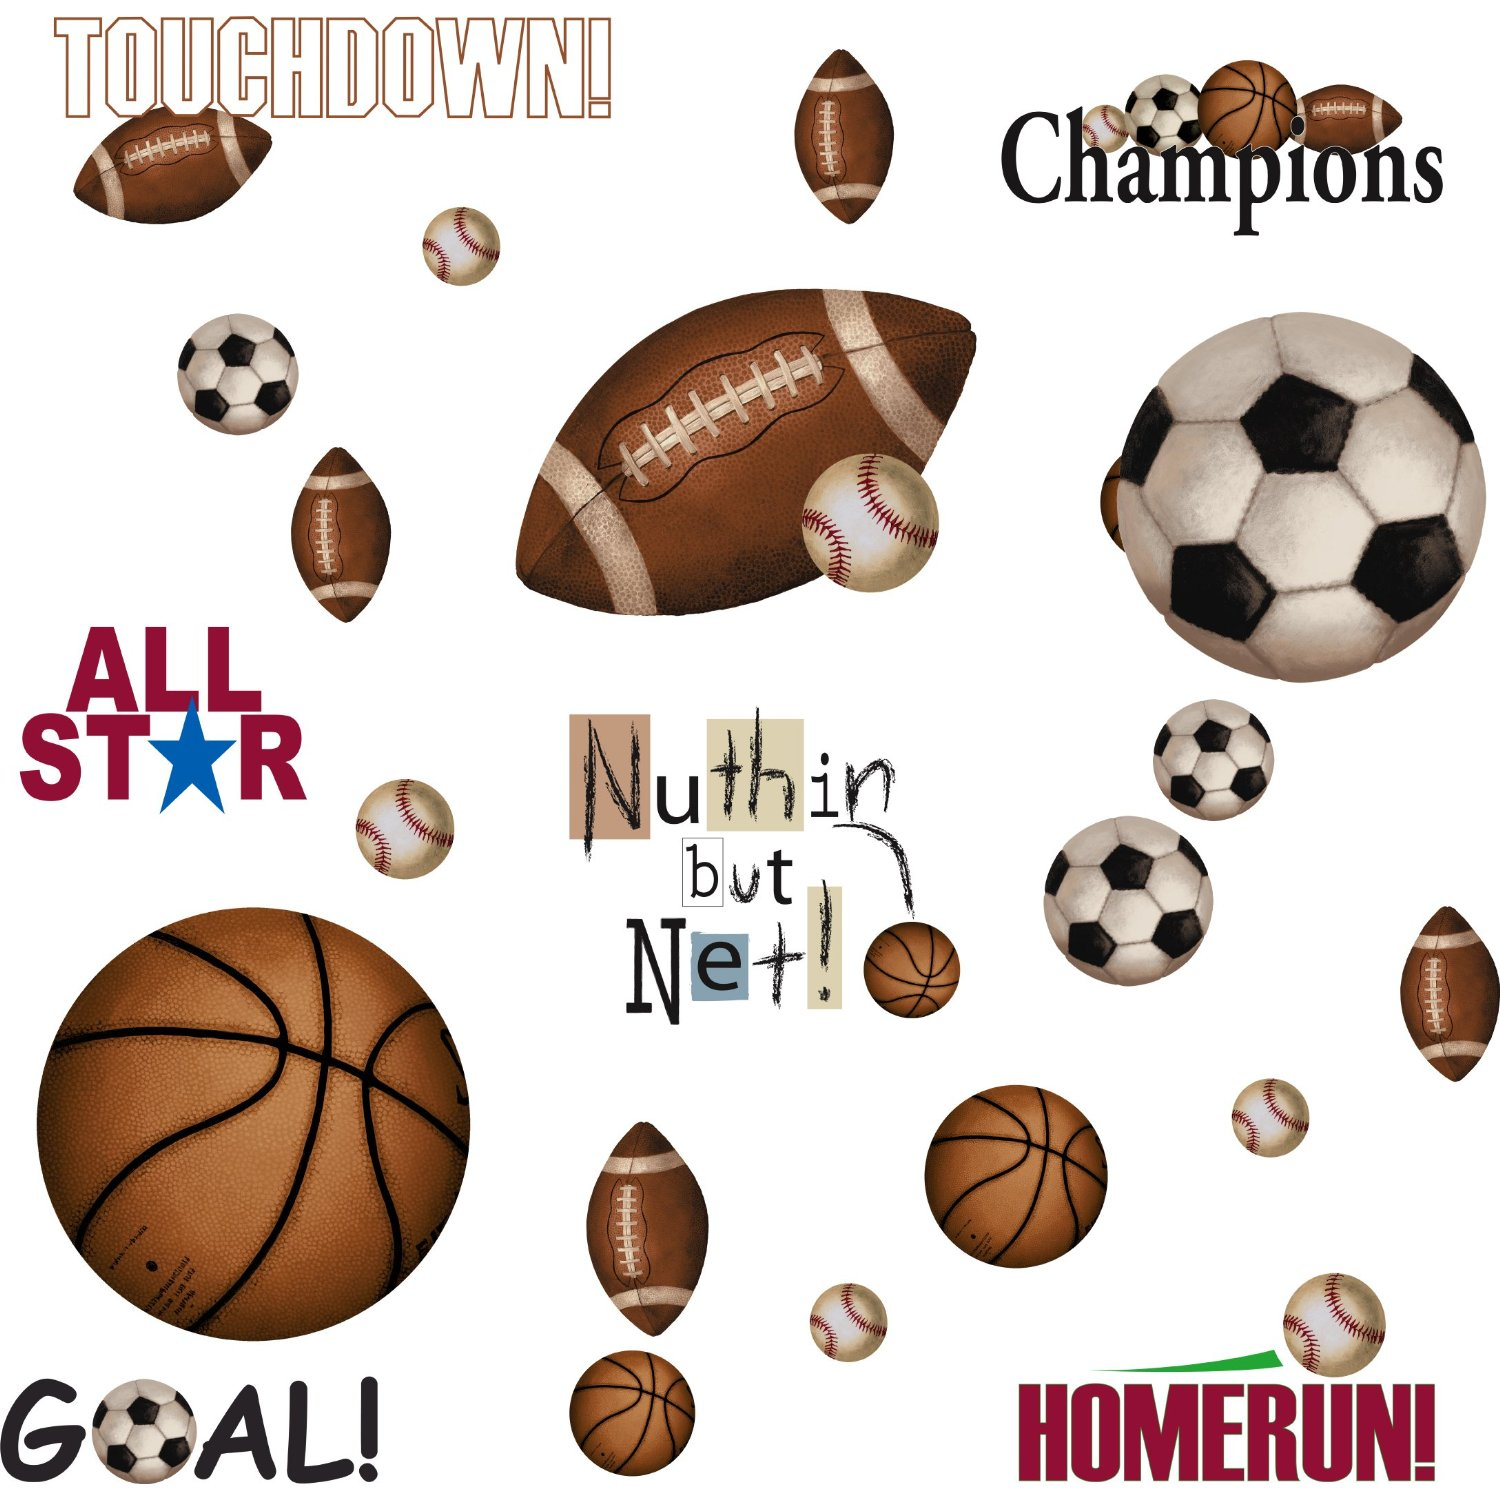 sports wall murals dont pinch my wallet sports wall murals budget wall decor for sports lovers